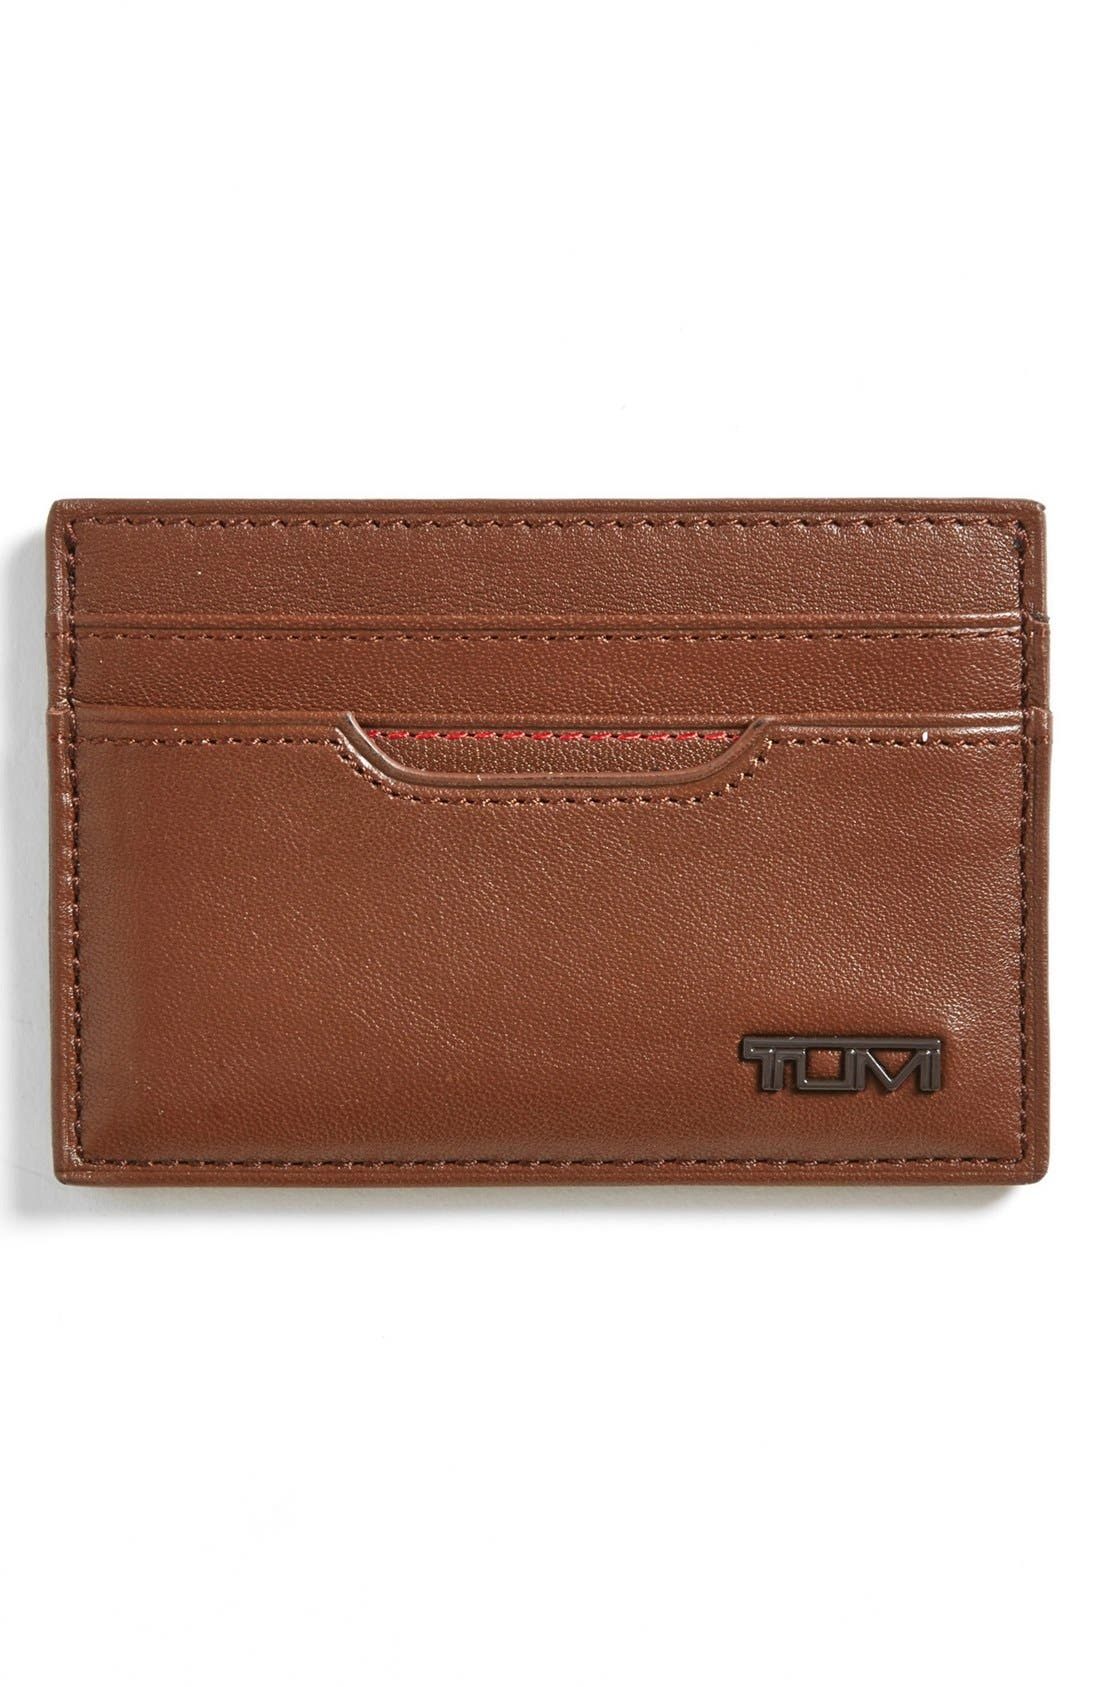 Main Image - Tumi 'Slim' Card Case ID Wallet